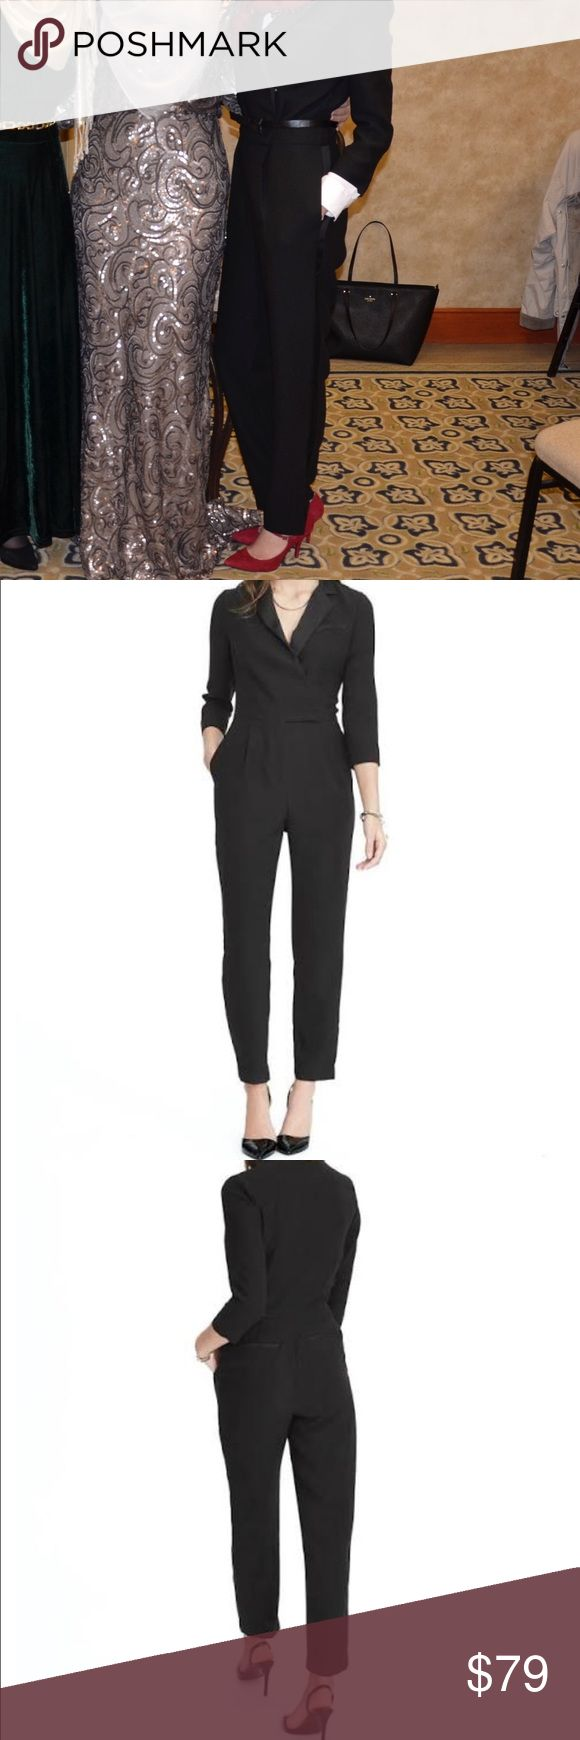 "Banana Republic Tuxedo Long Sleeve Black Jumpsuit Banana Republic, sexy black jumpsuit with black straps lining the sides. Well tailored with a deep v-neck, worn one time, in perfect condition. Size is a 2 TALL. I am 5'8"" (more leggy) and more of a size 0 so it was slightly big on me waist wise but length was perfect! Banana Republic Other"